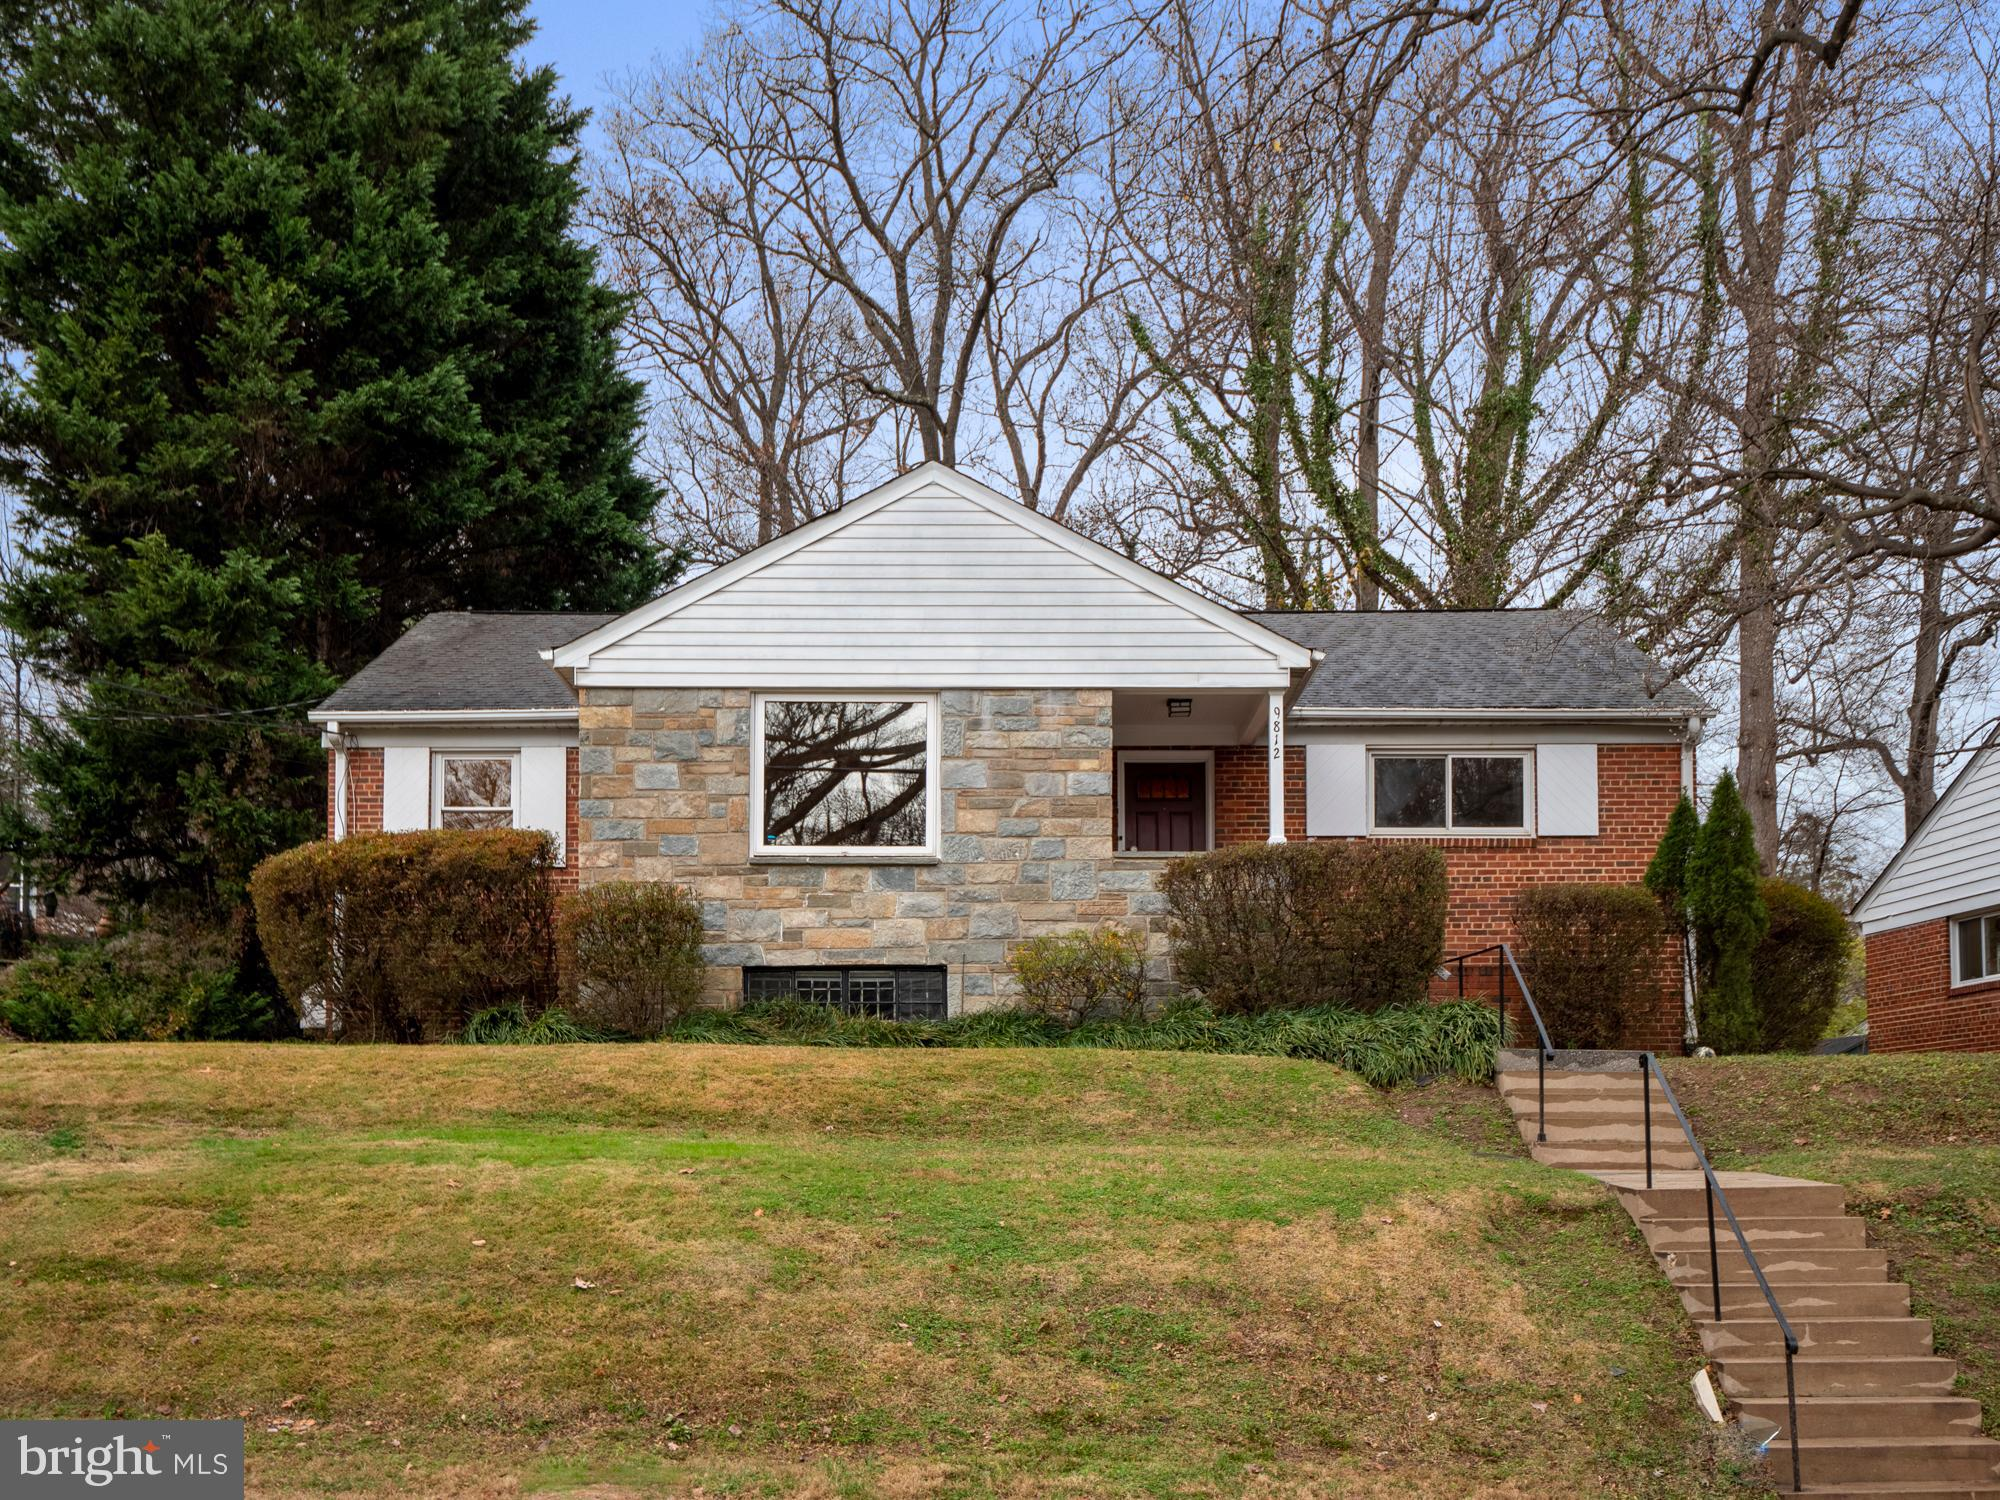 Set on a generous lot with a deep back yard, this home has a fantastic  location that is approximate